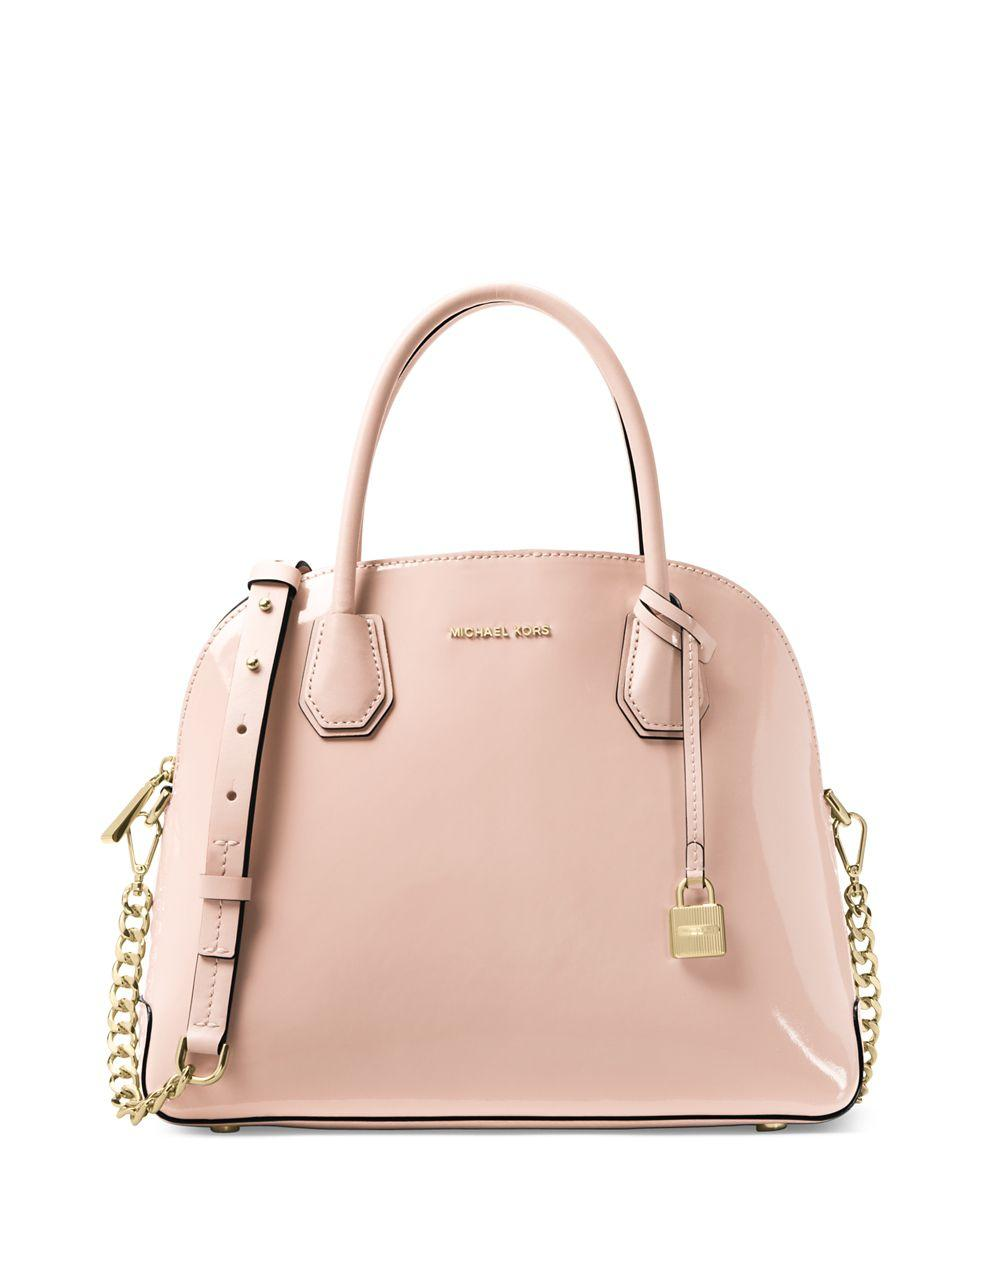 Lyst - Michael Kors Mercer Dome Satchel in Pink 074871ea7944d